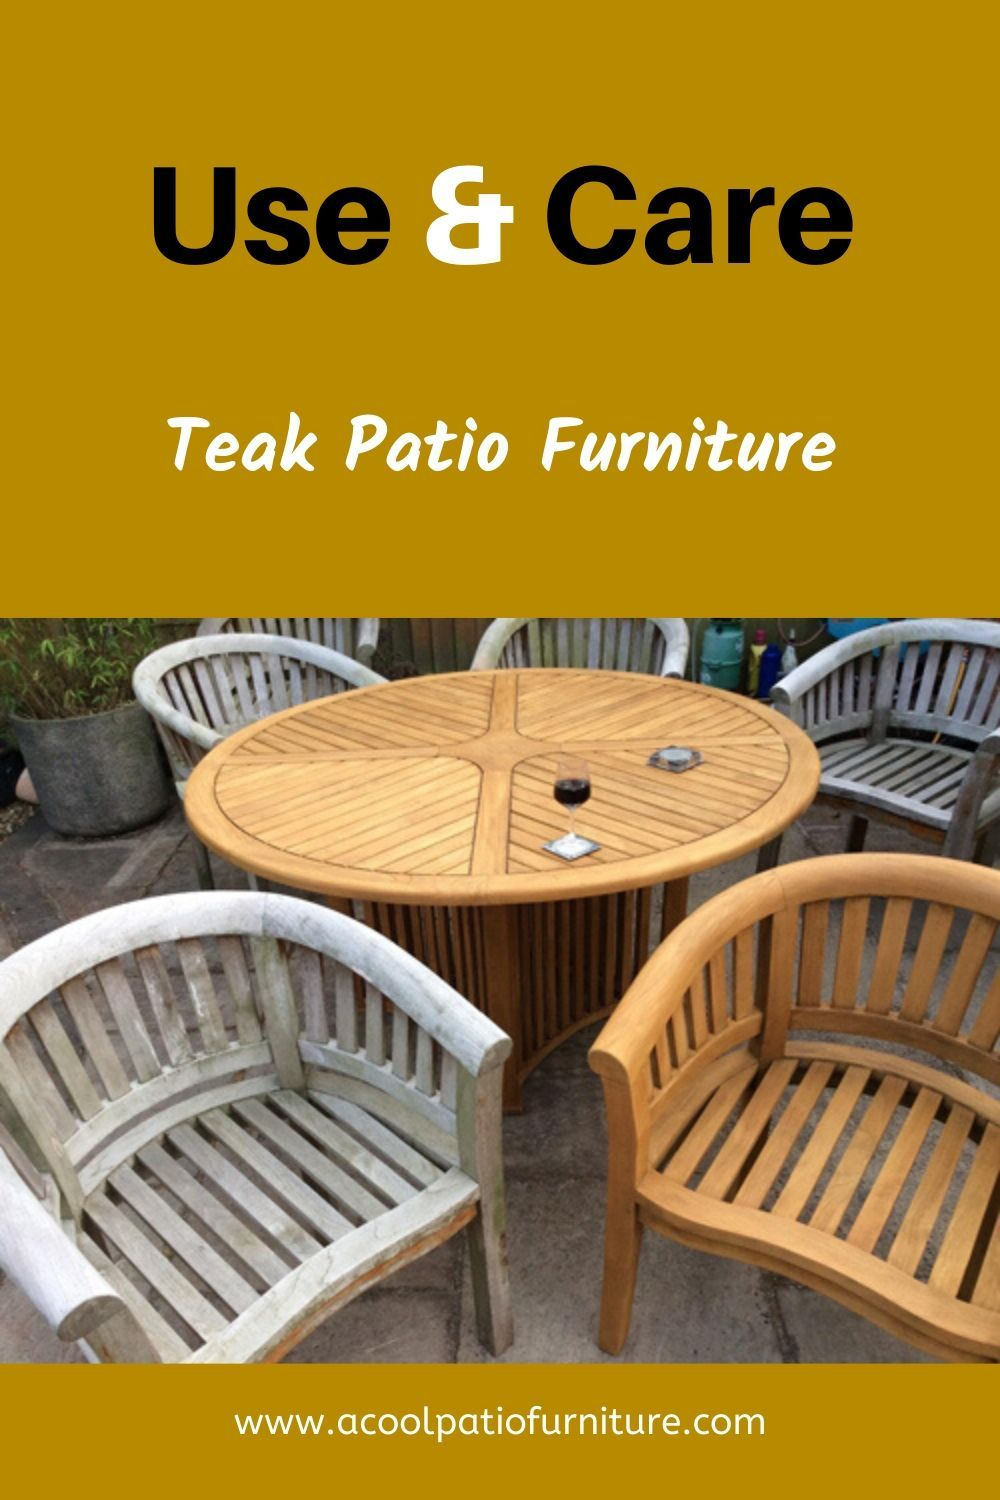 Teak Patio Furniture Use And Care Teak Wood Grows In Severe Climatic Conditions In In 2020 Teak Patio Furniture Backyard Patio Furniture Diy Patio Furniture